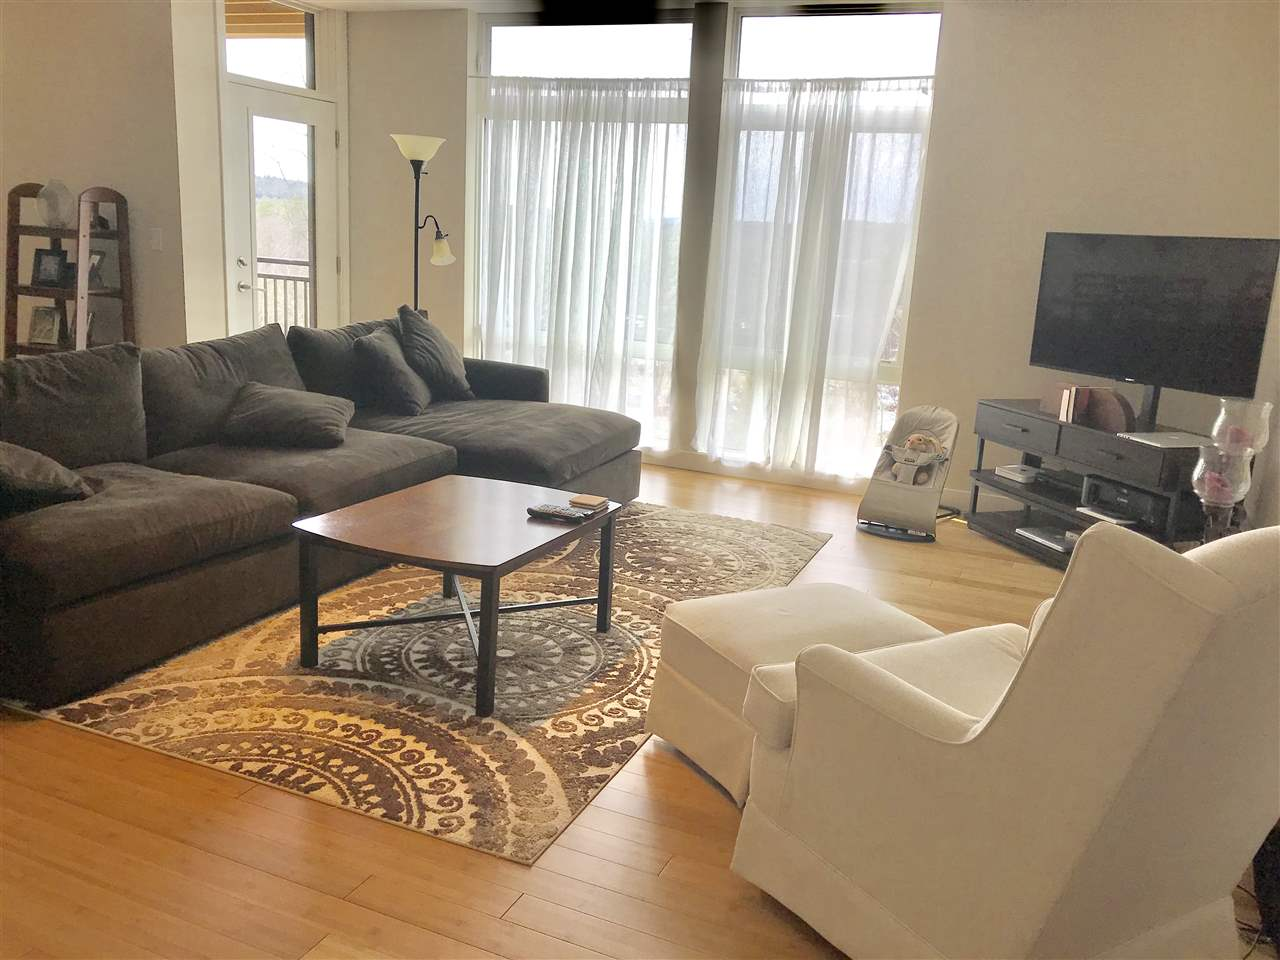 Spacious living room with access to deck with views